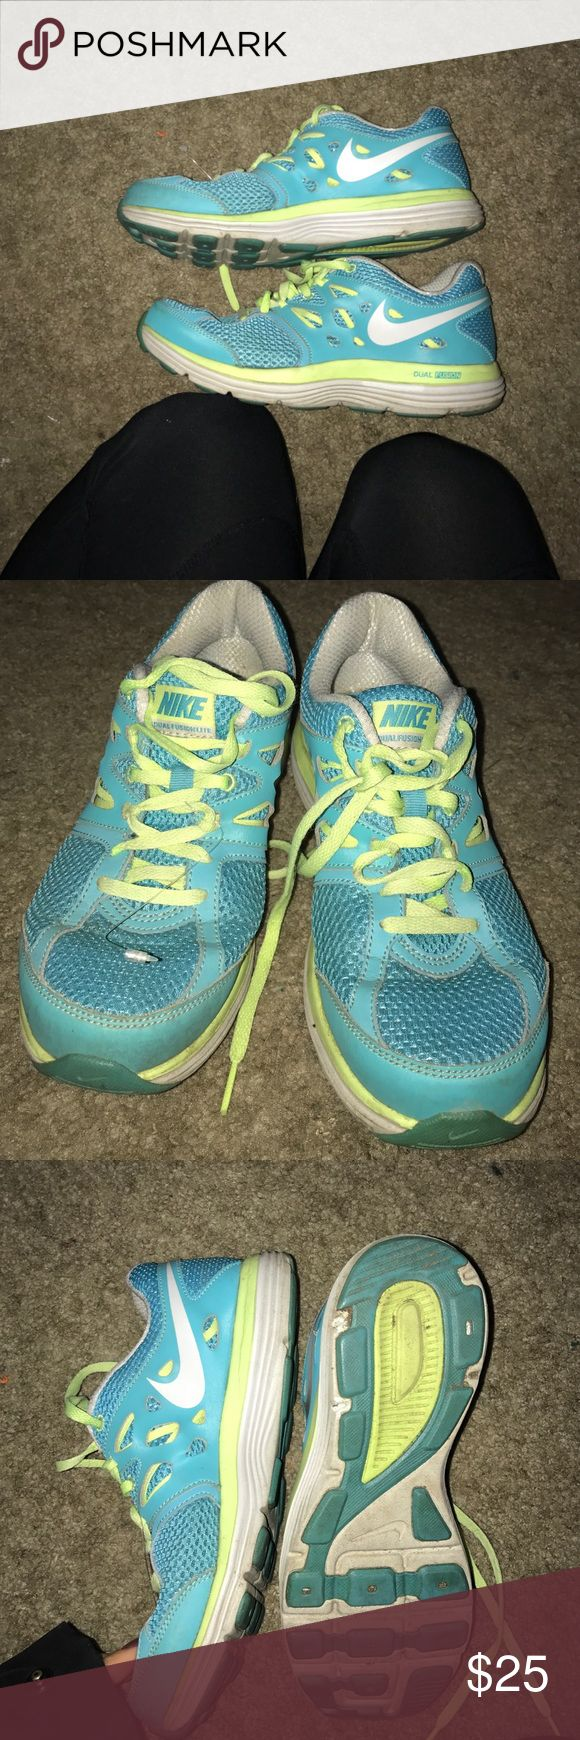 Nike dual fusion lite running shoes Gently worn in great shape Nike Shoes Sneakers